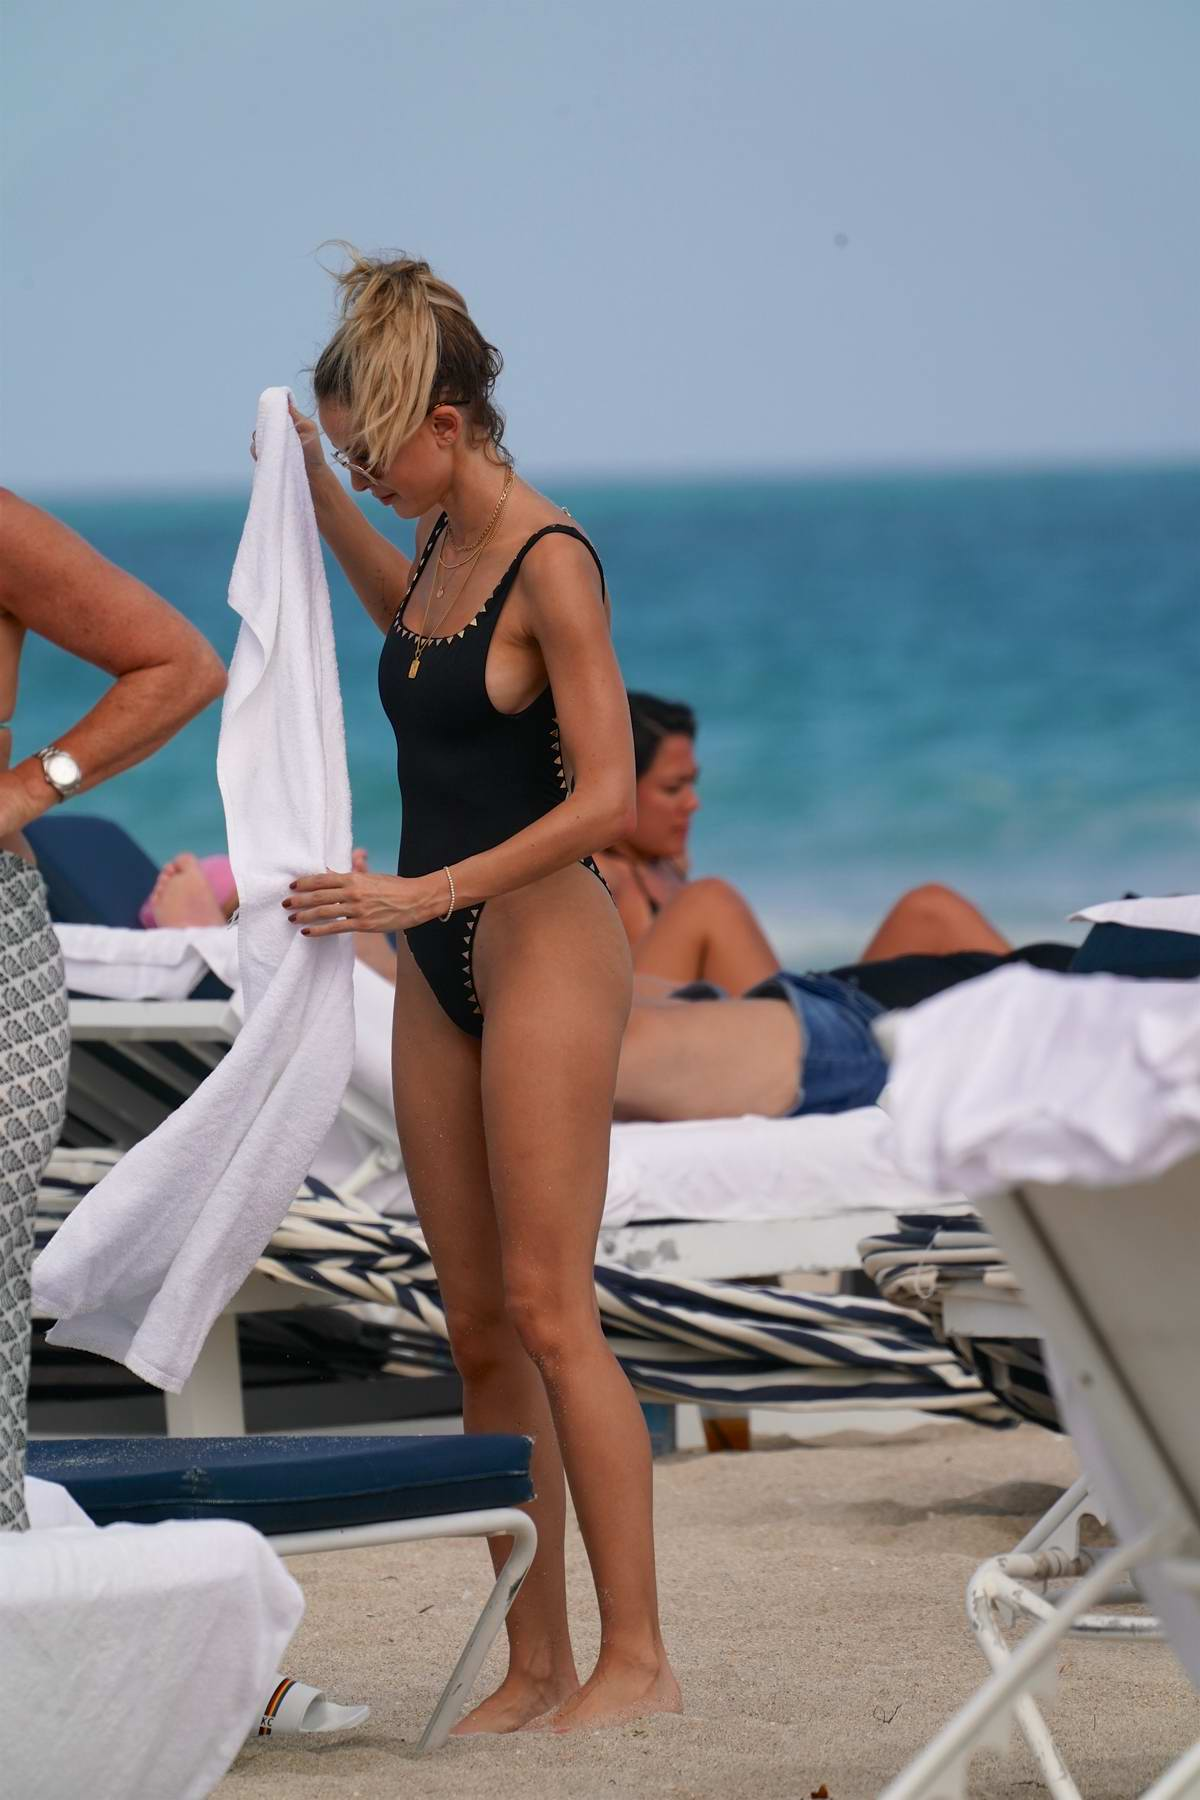 Kaitlynn Carter spotted in a black swimsuit while relaxing at the beach in Miami, Florida